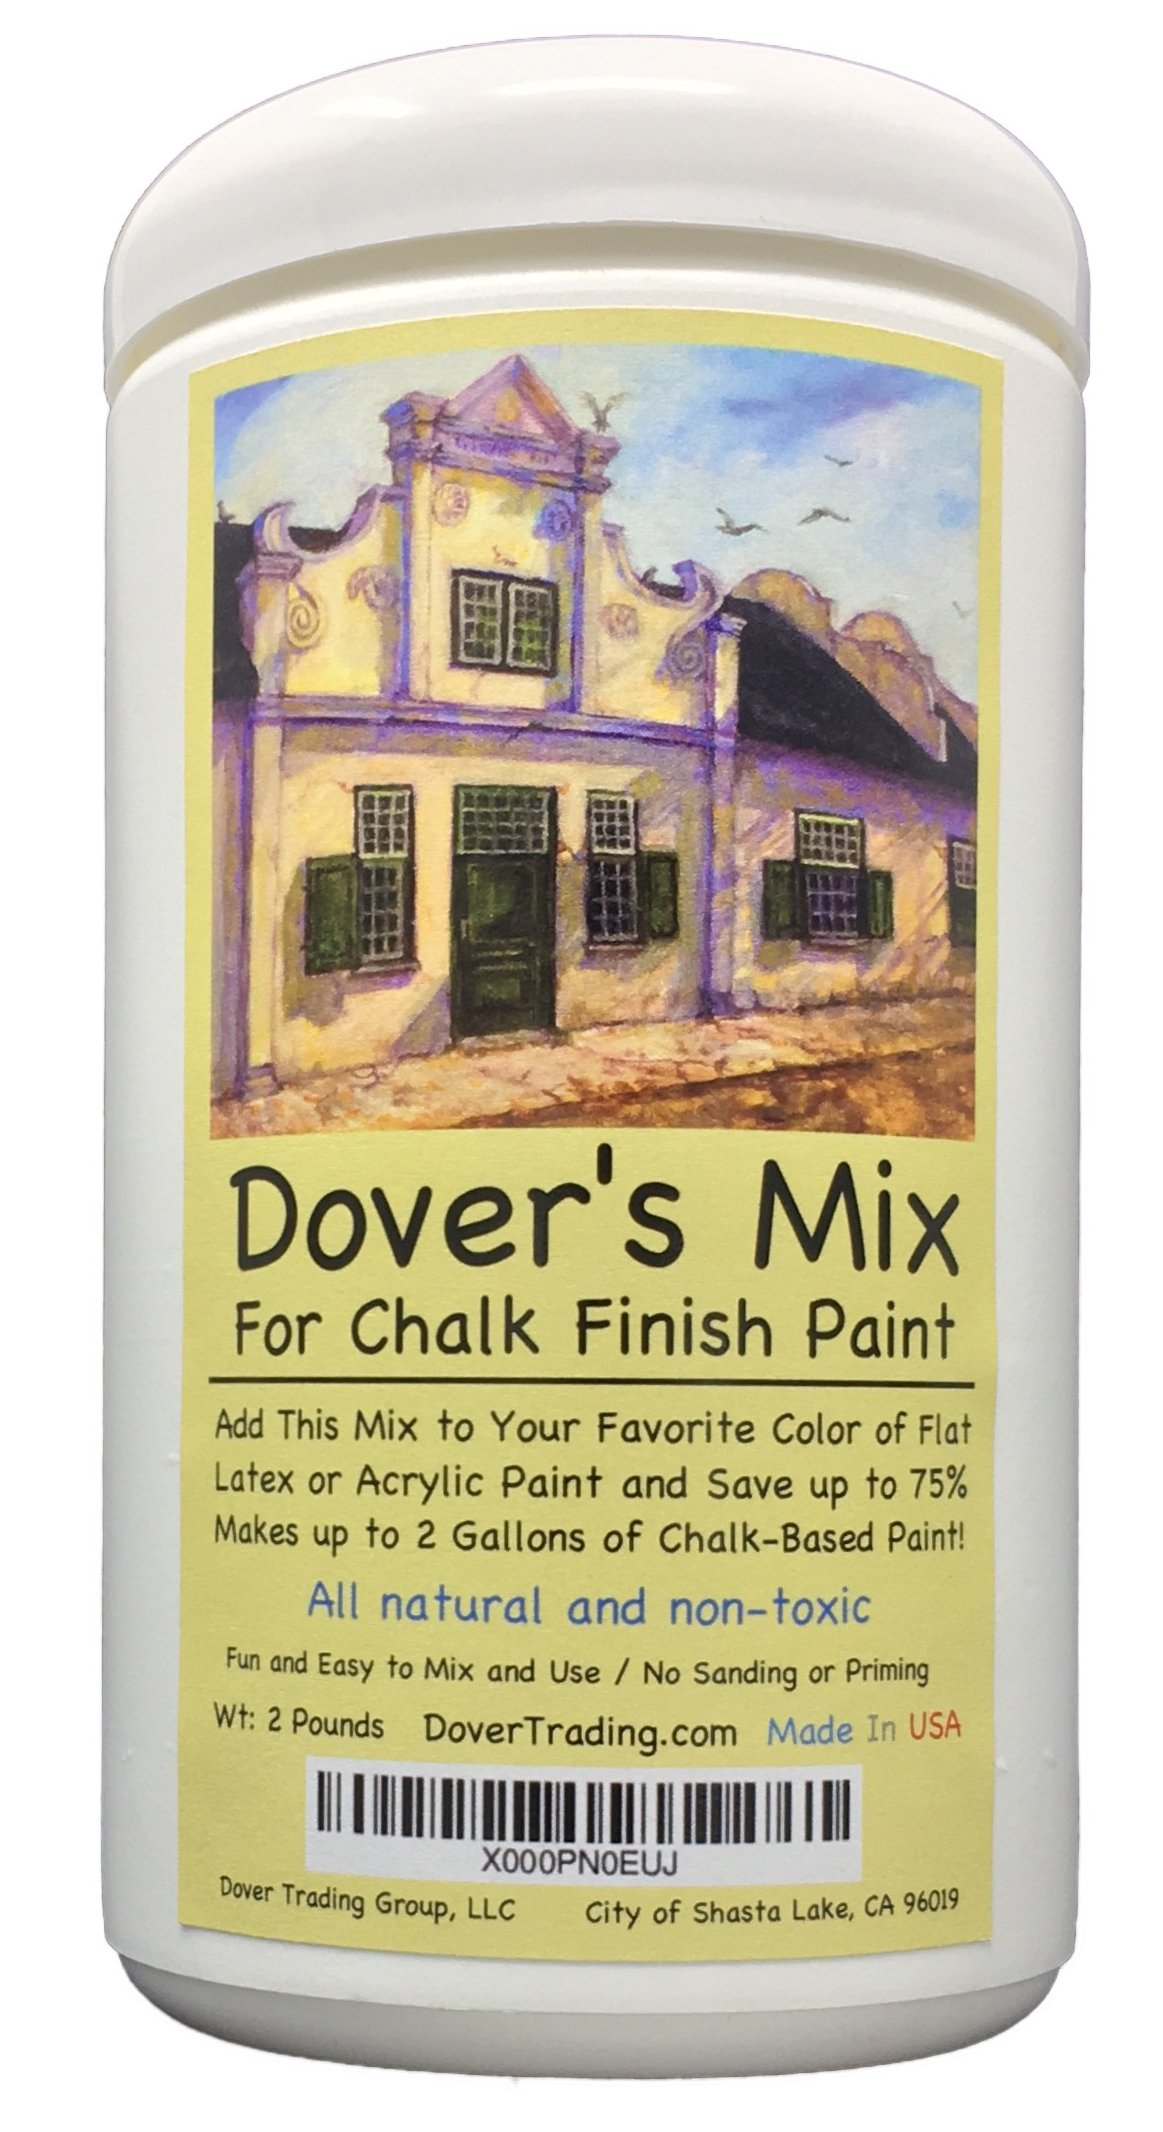 Chalk Finish Paint Mix by Dover's - Add to Any Color of Flat Latex or Acrylic Paint to Make up to 2 Gallons of Inexpensive Chalk Furniture Paint - All Natural and Non-Toxic by Dover's Chalk Paint Mix